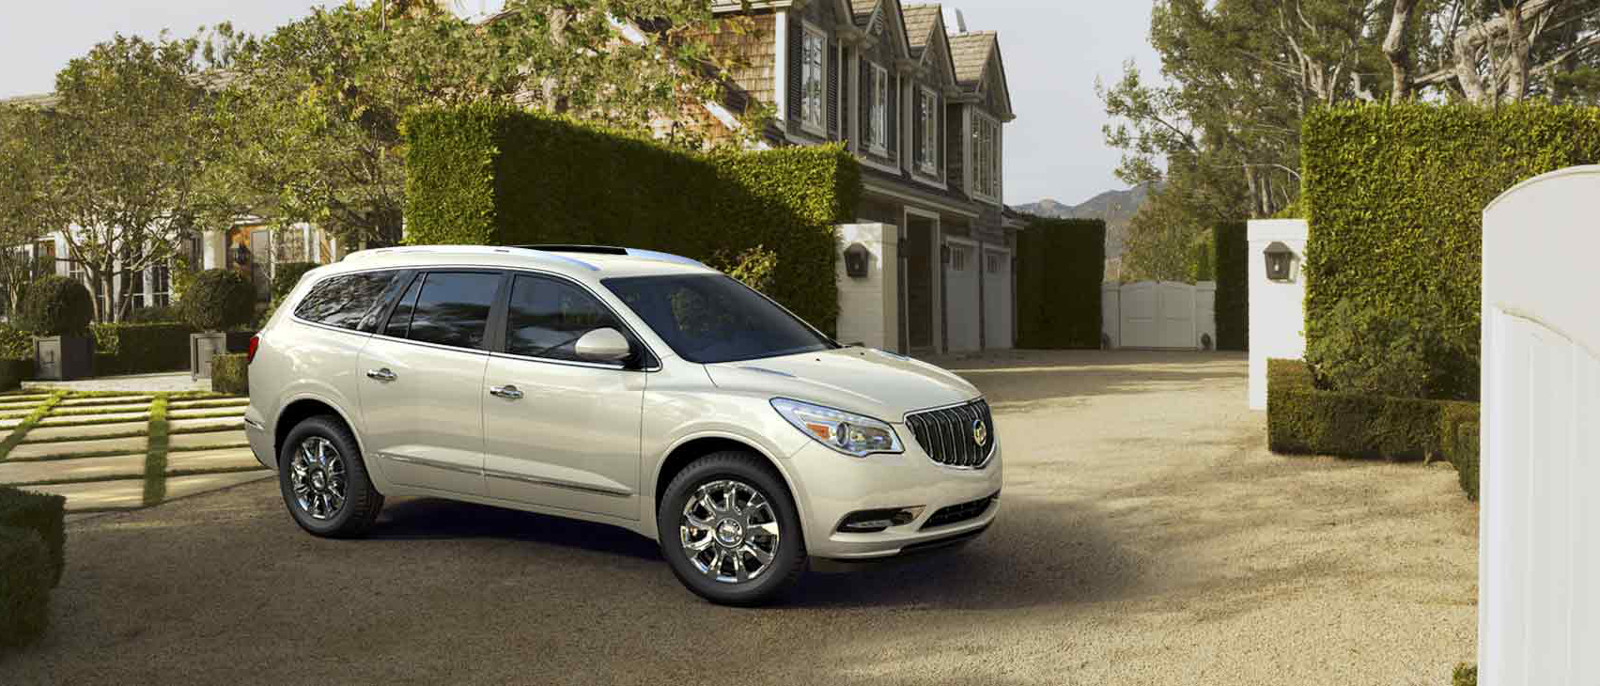 2016 Buick Enclave Side View